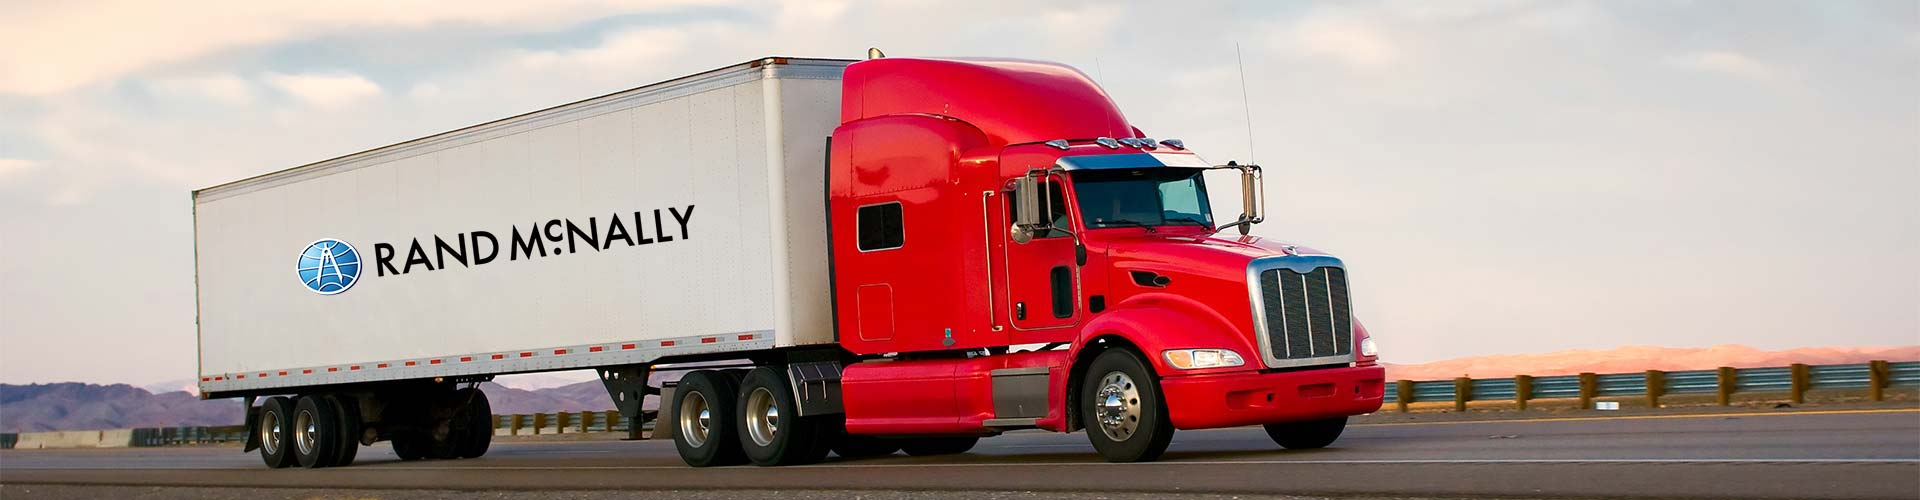 ELD and HOS Trucking Software Solutions | Rand McNally